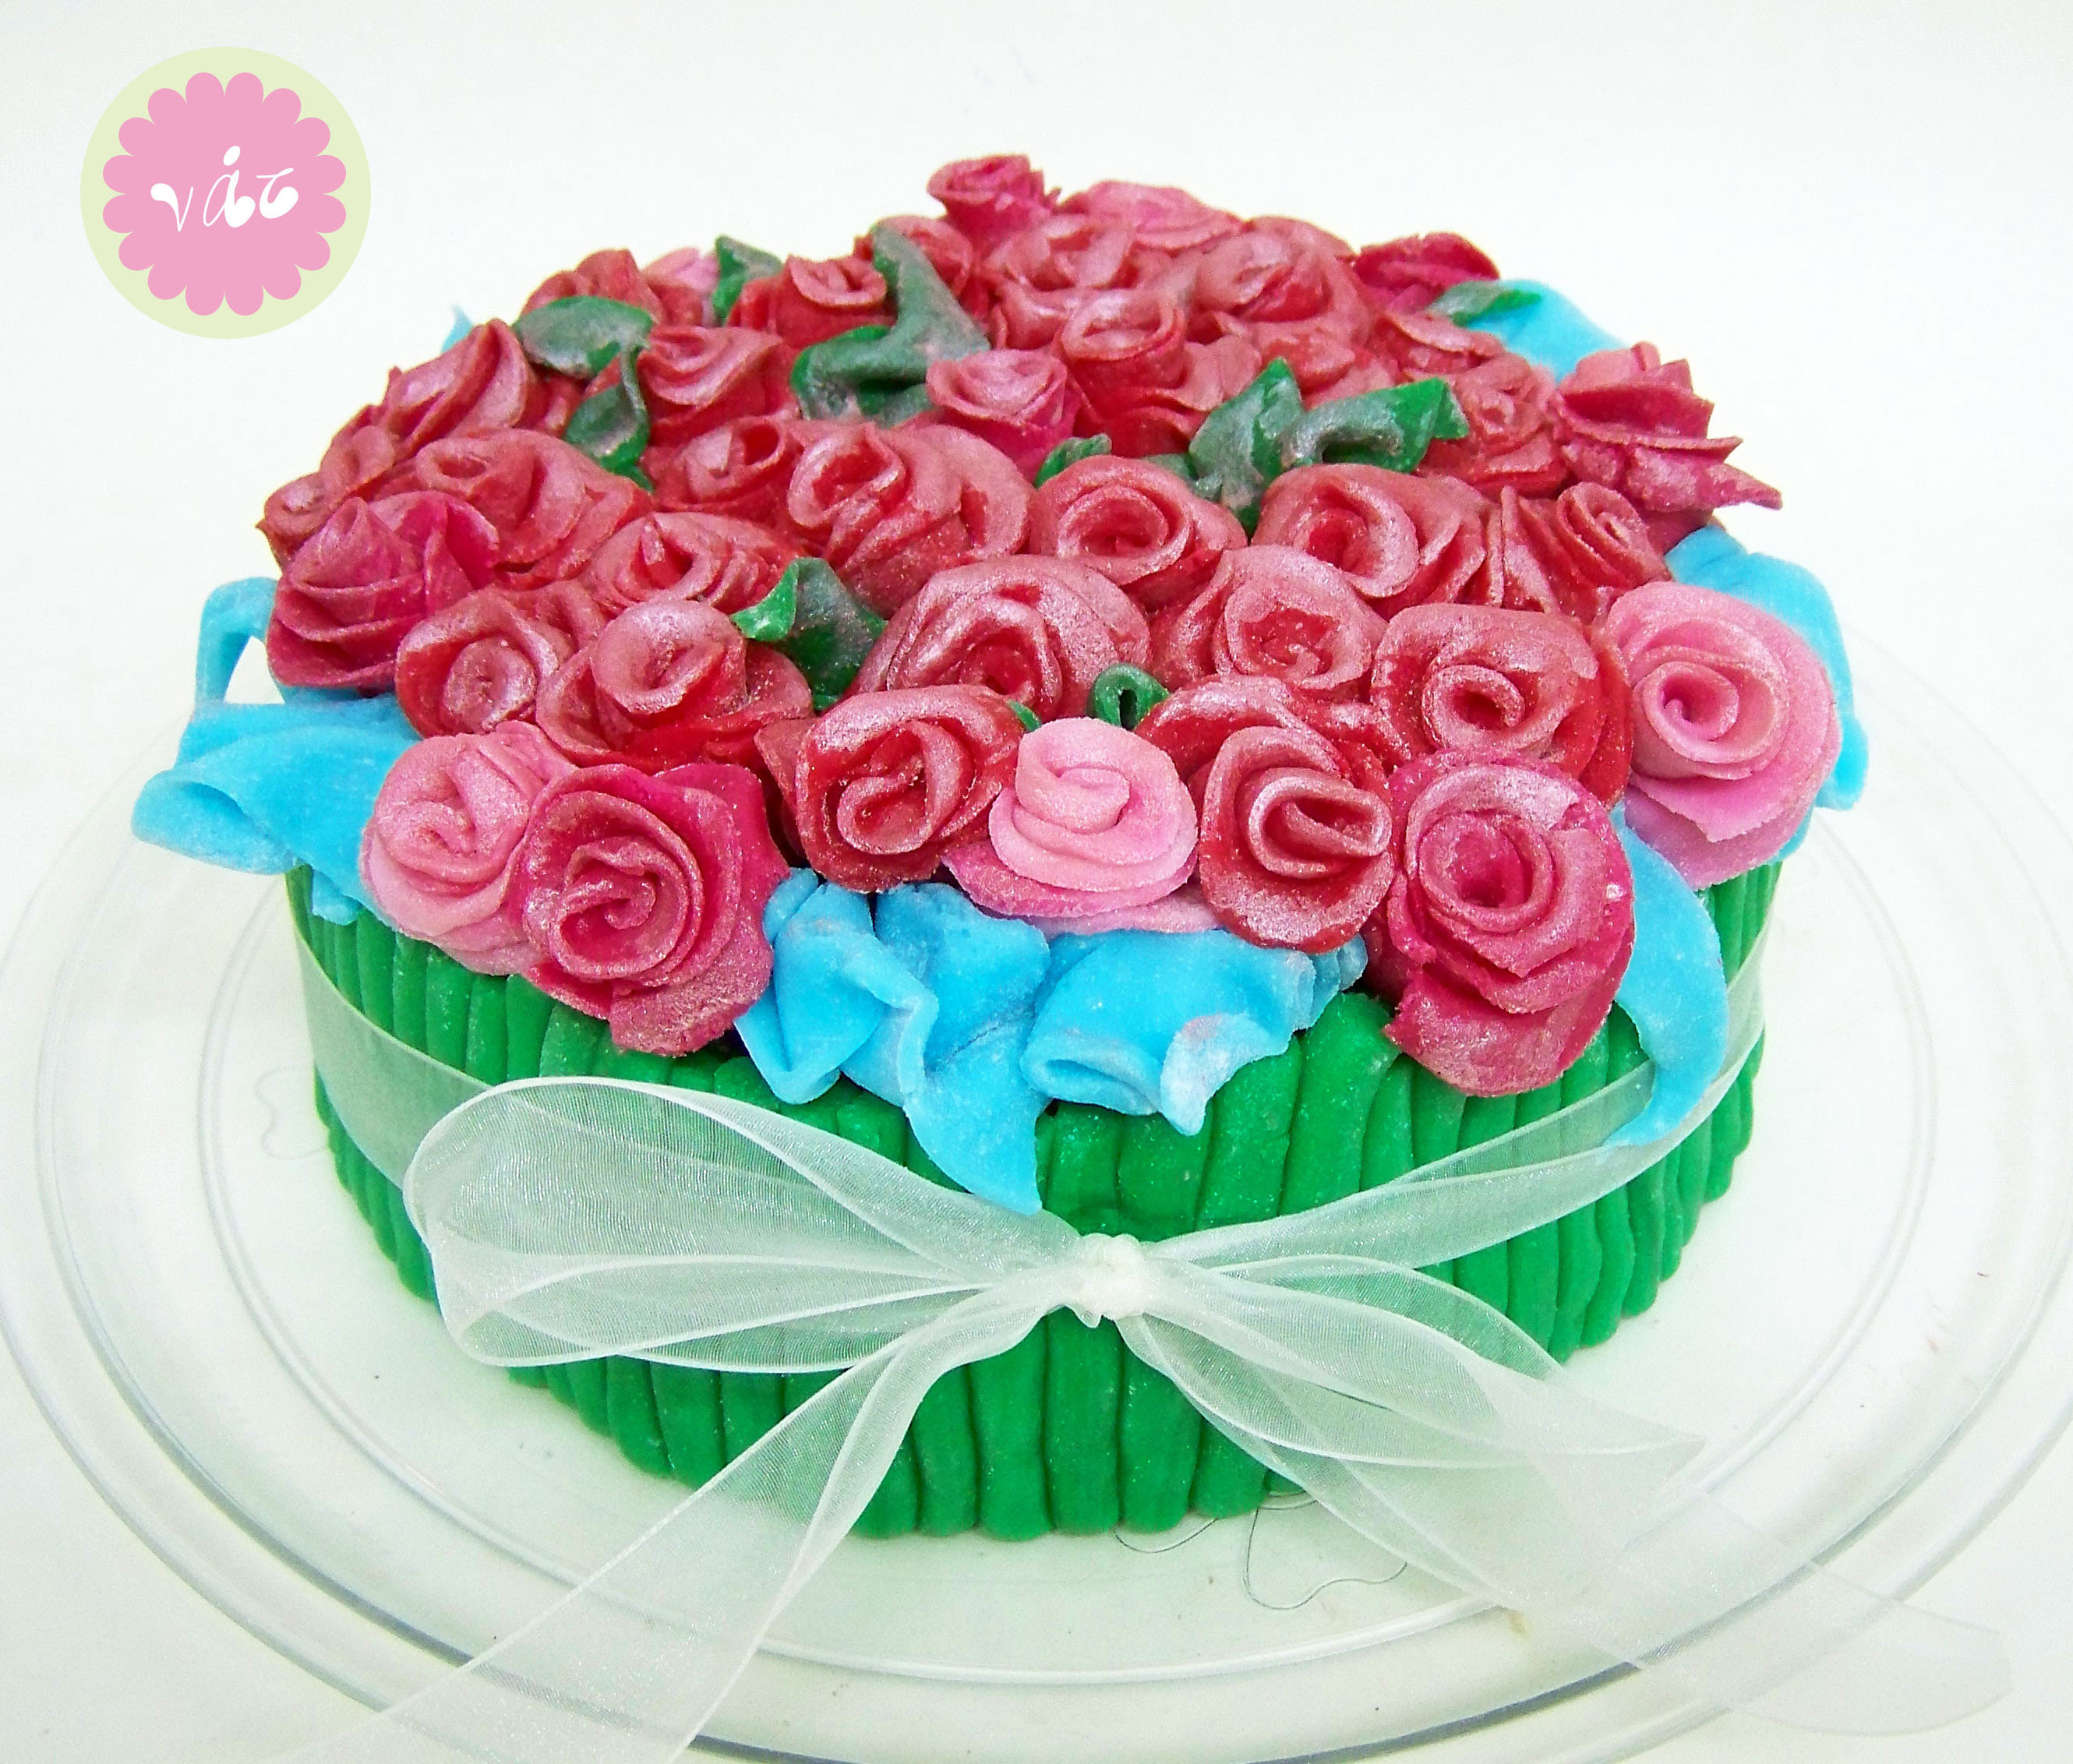 Best ideas about Roses Birthday Cake . Save or Pin Soccer Cakes Cake Ideas and Designs Now.